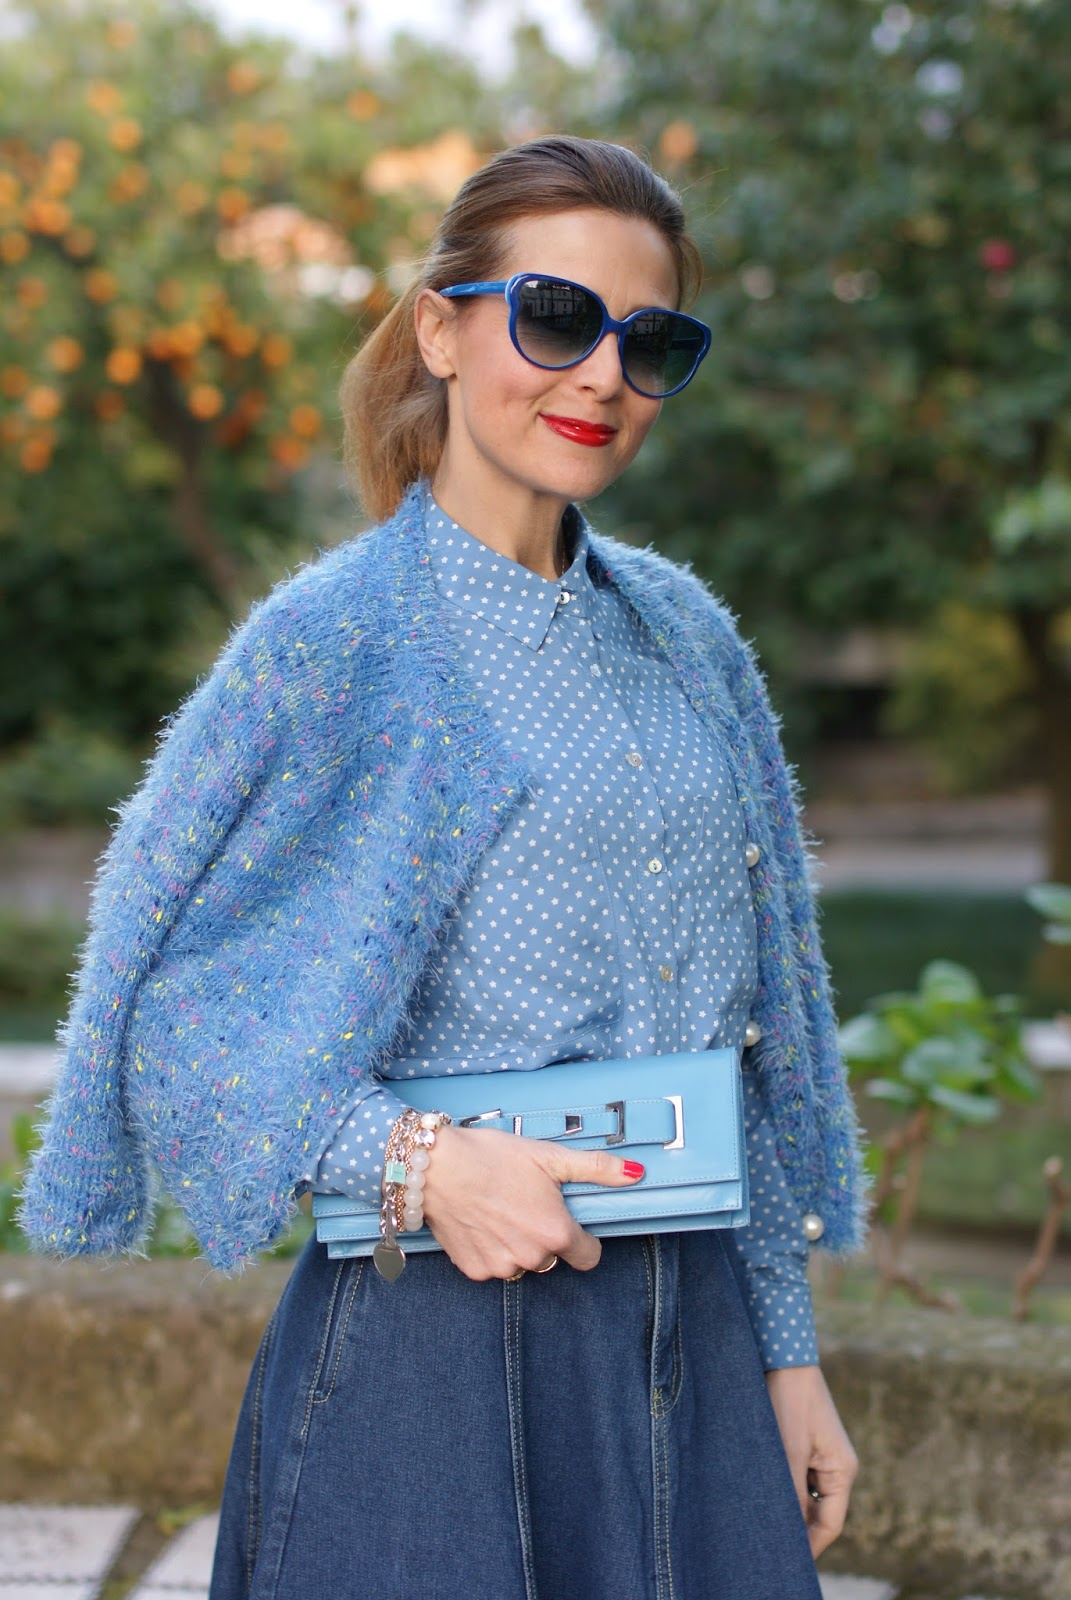 Stradivarius star print shirt on Fashion and Cookies fashion blog, fashion blogger style